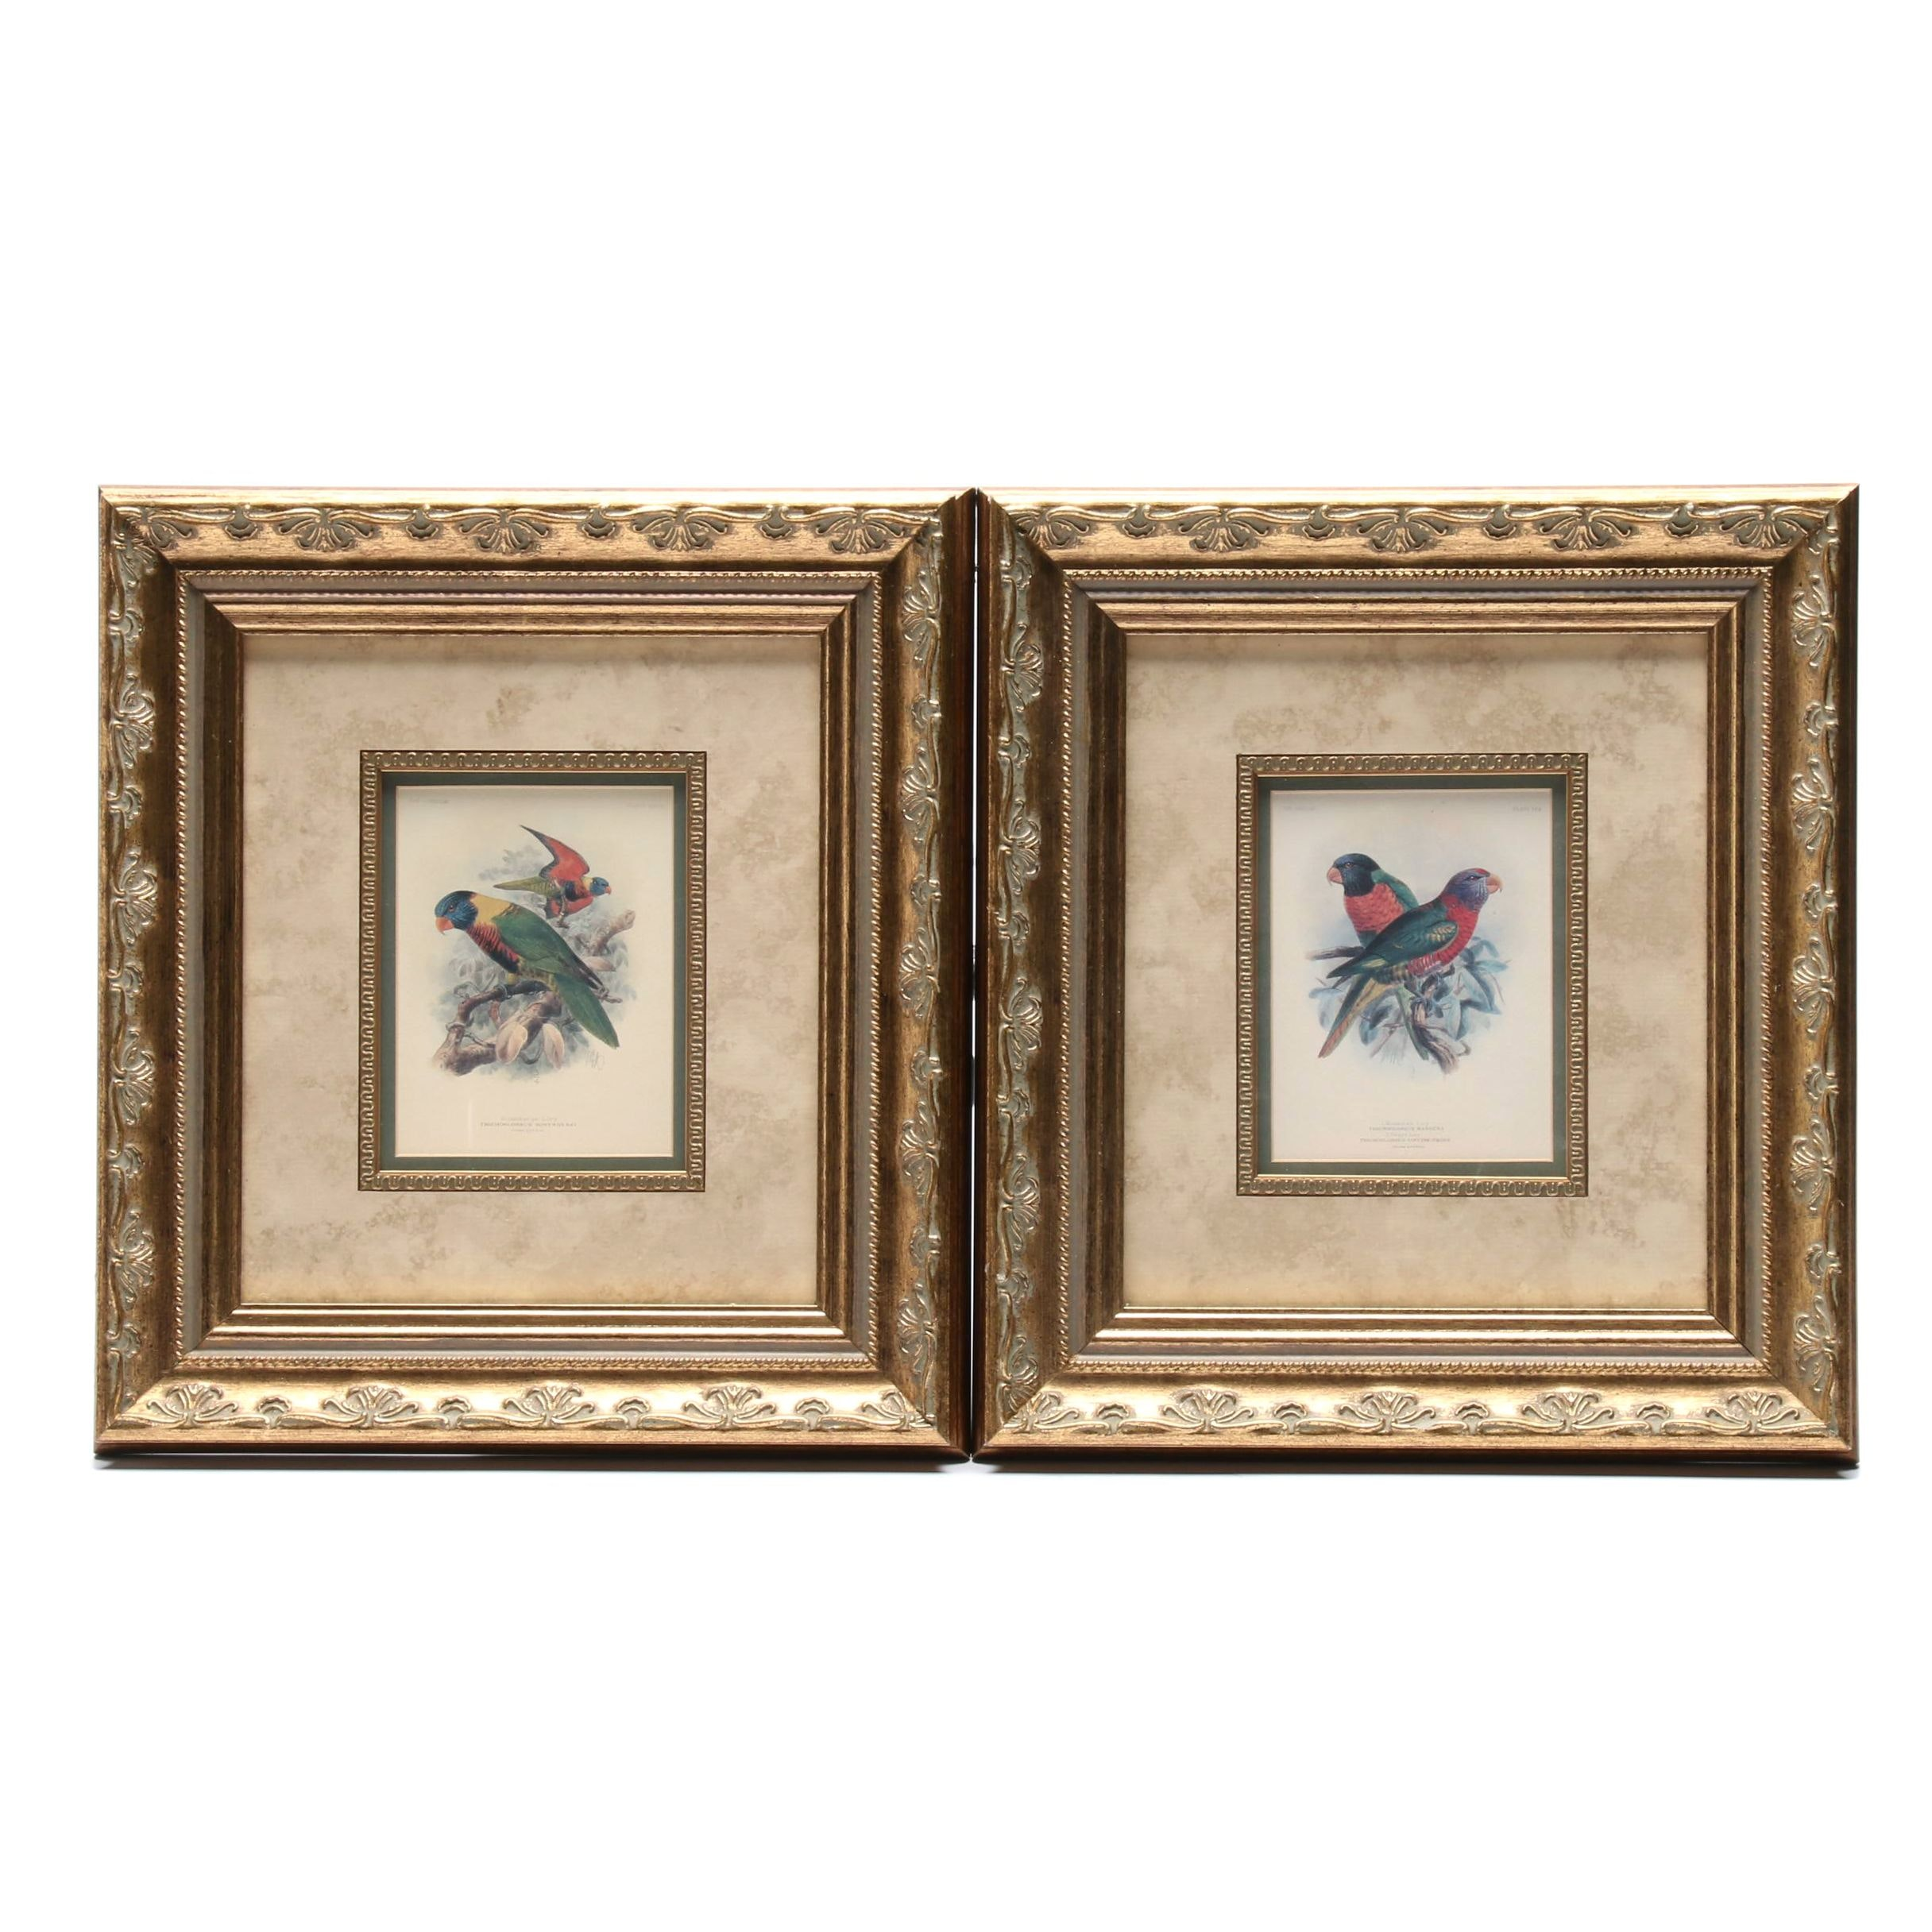 Offset Lithograph of Lory Parrots After R.H. Porter